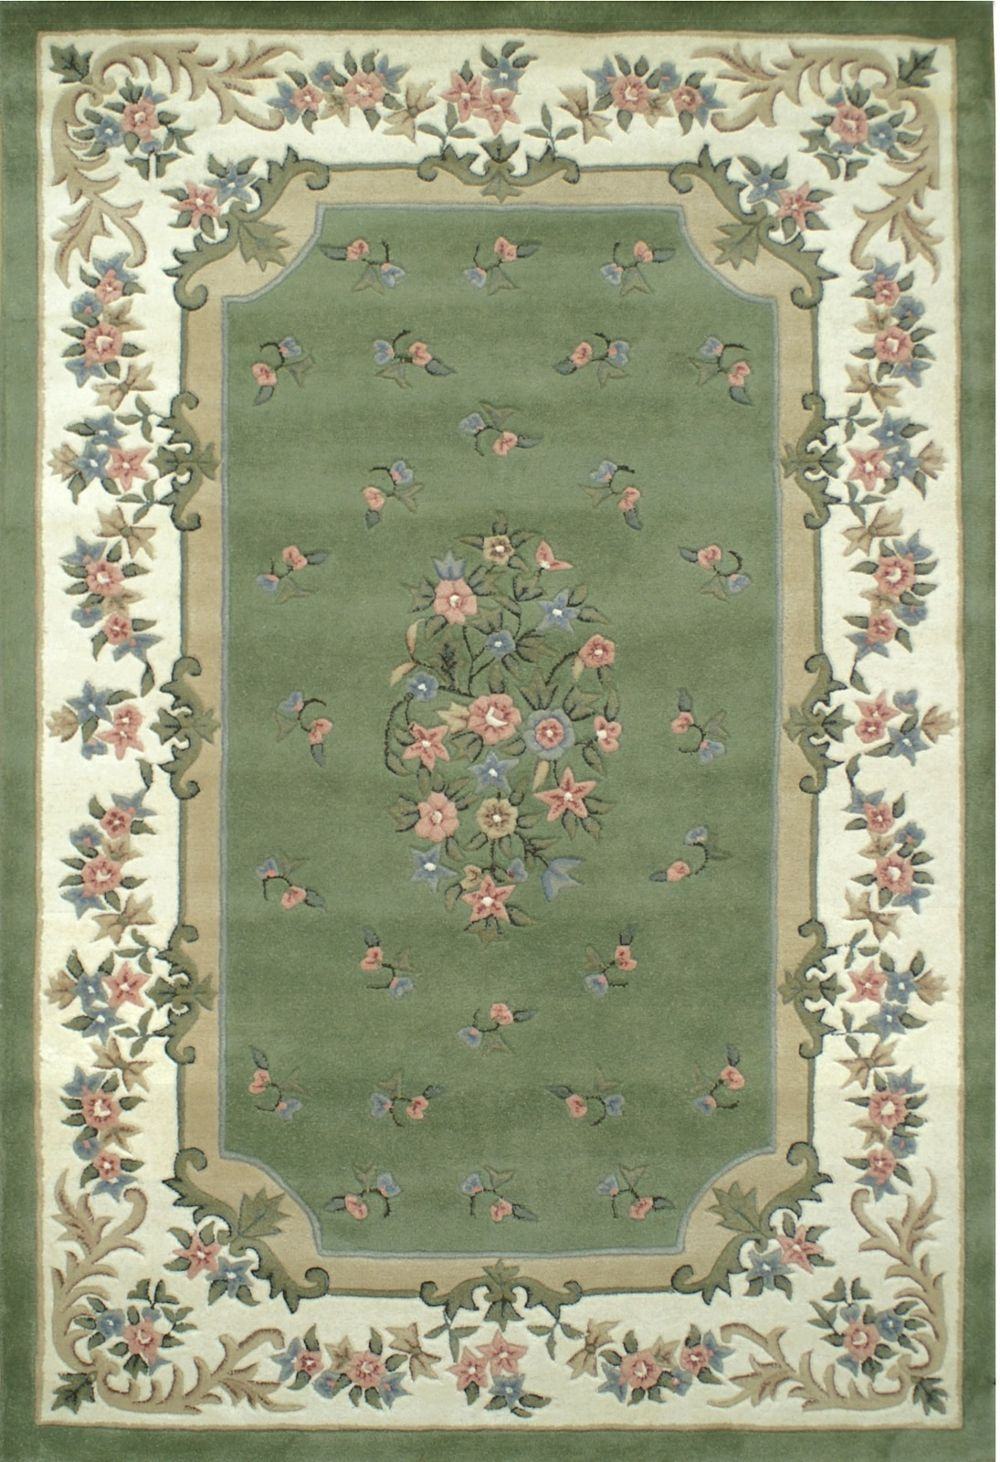 american home floral garden traditional area rug collection